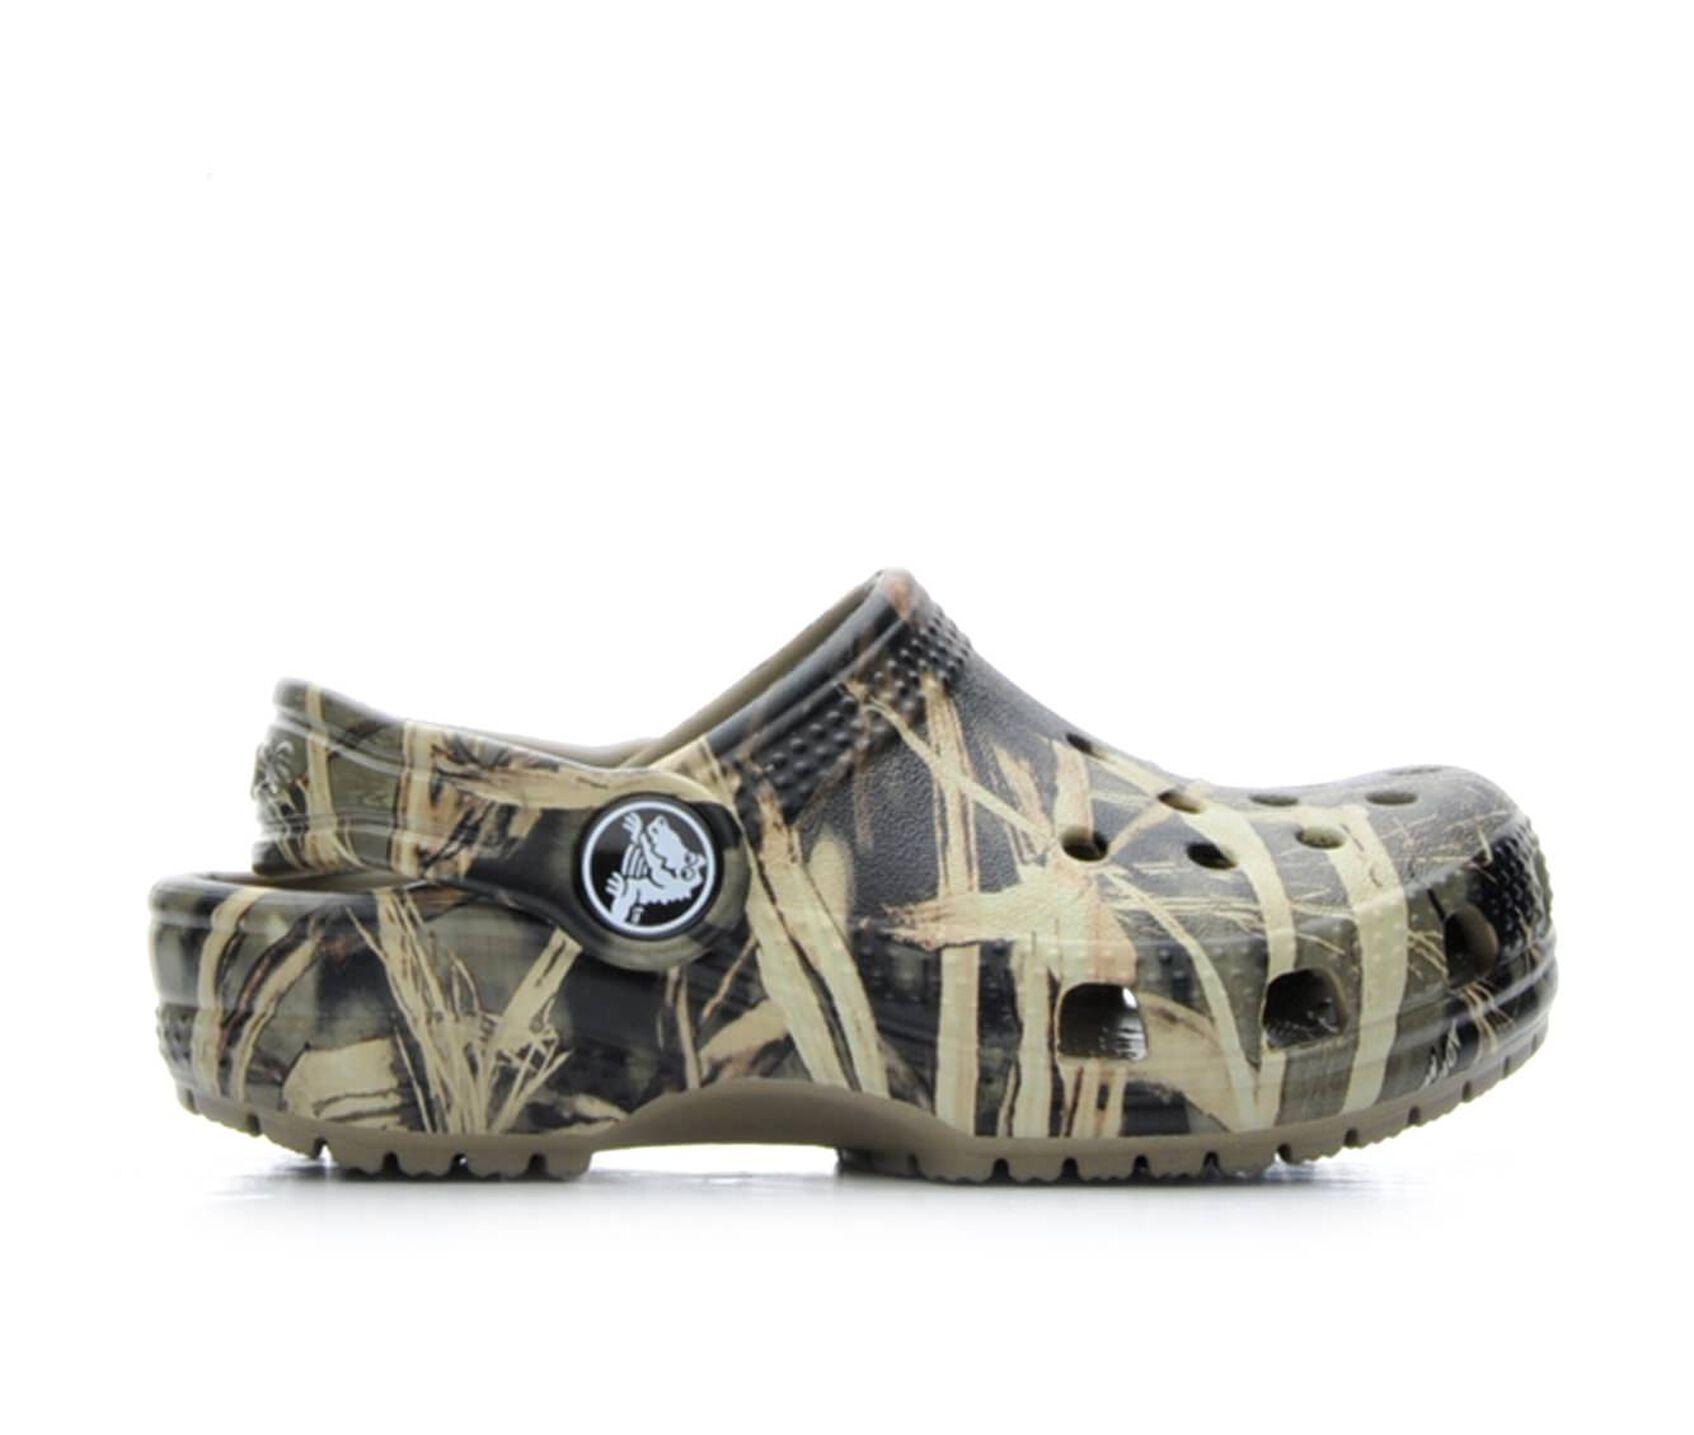 fbbfcac75b0f8 Boys' Crocs Infant & Toddler Classic Realtree Clogs | Shoe Carnival